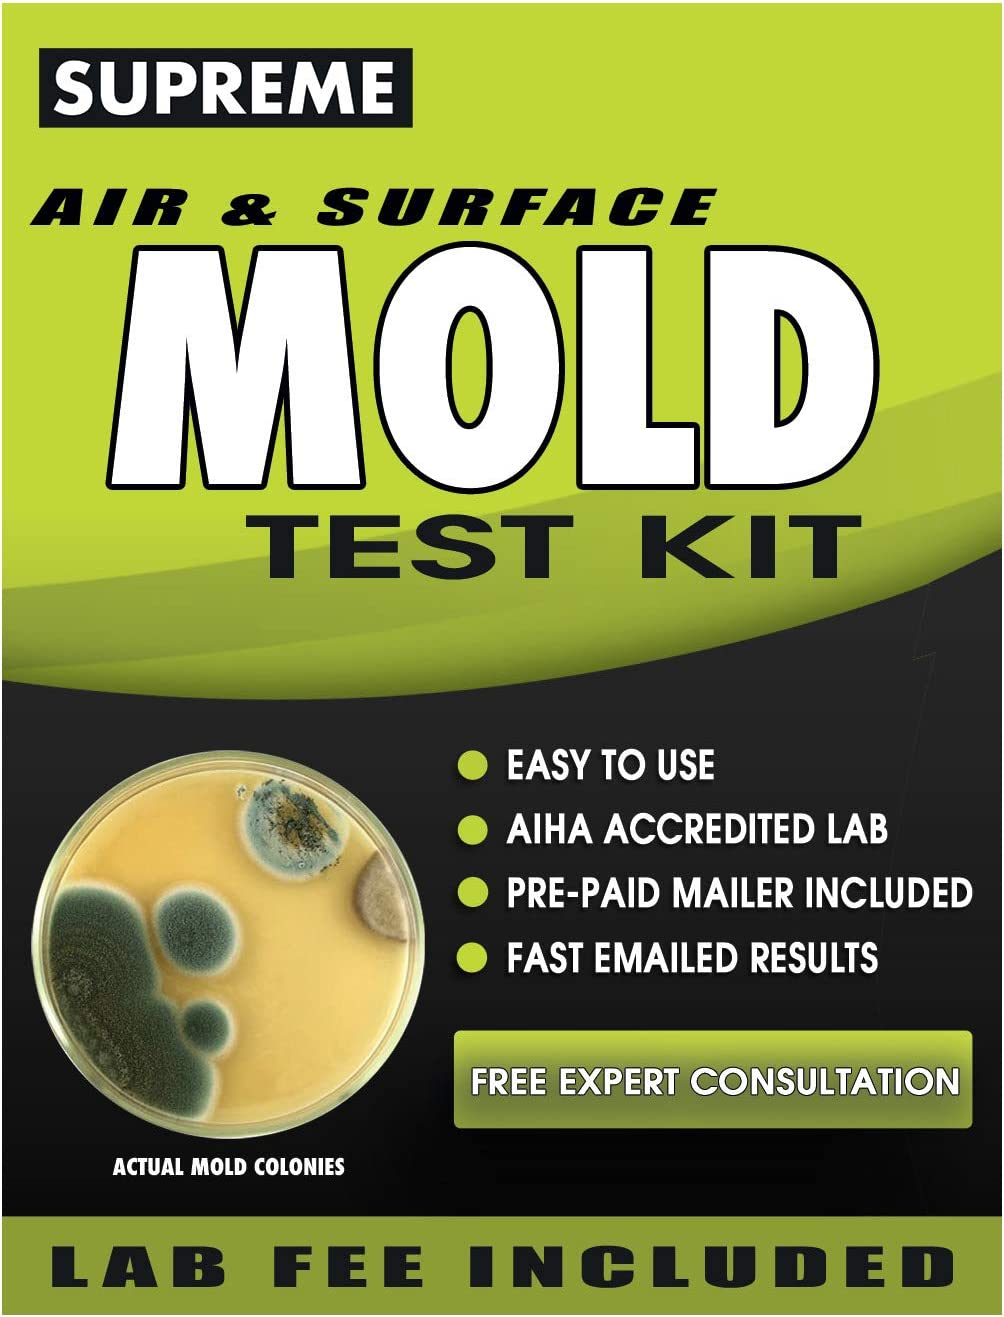 SUPREME - Mold Test Kit For Home - Air And Surface Mold Testing Kit - Mold Lab Analysis, Pre-Paid Return Mailer, Fast Mold Results To Your Home In 1 Week And Expert Mold Consultation